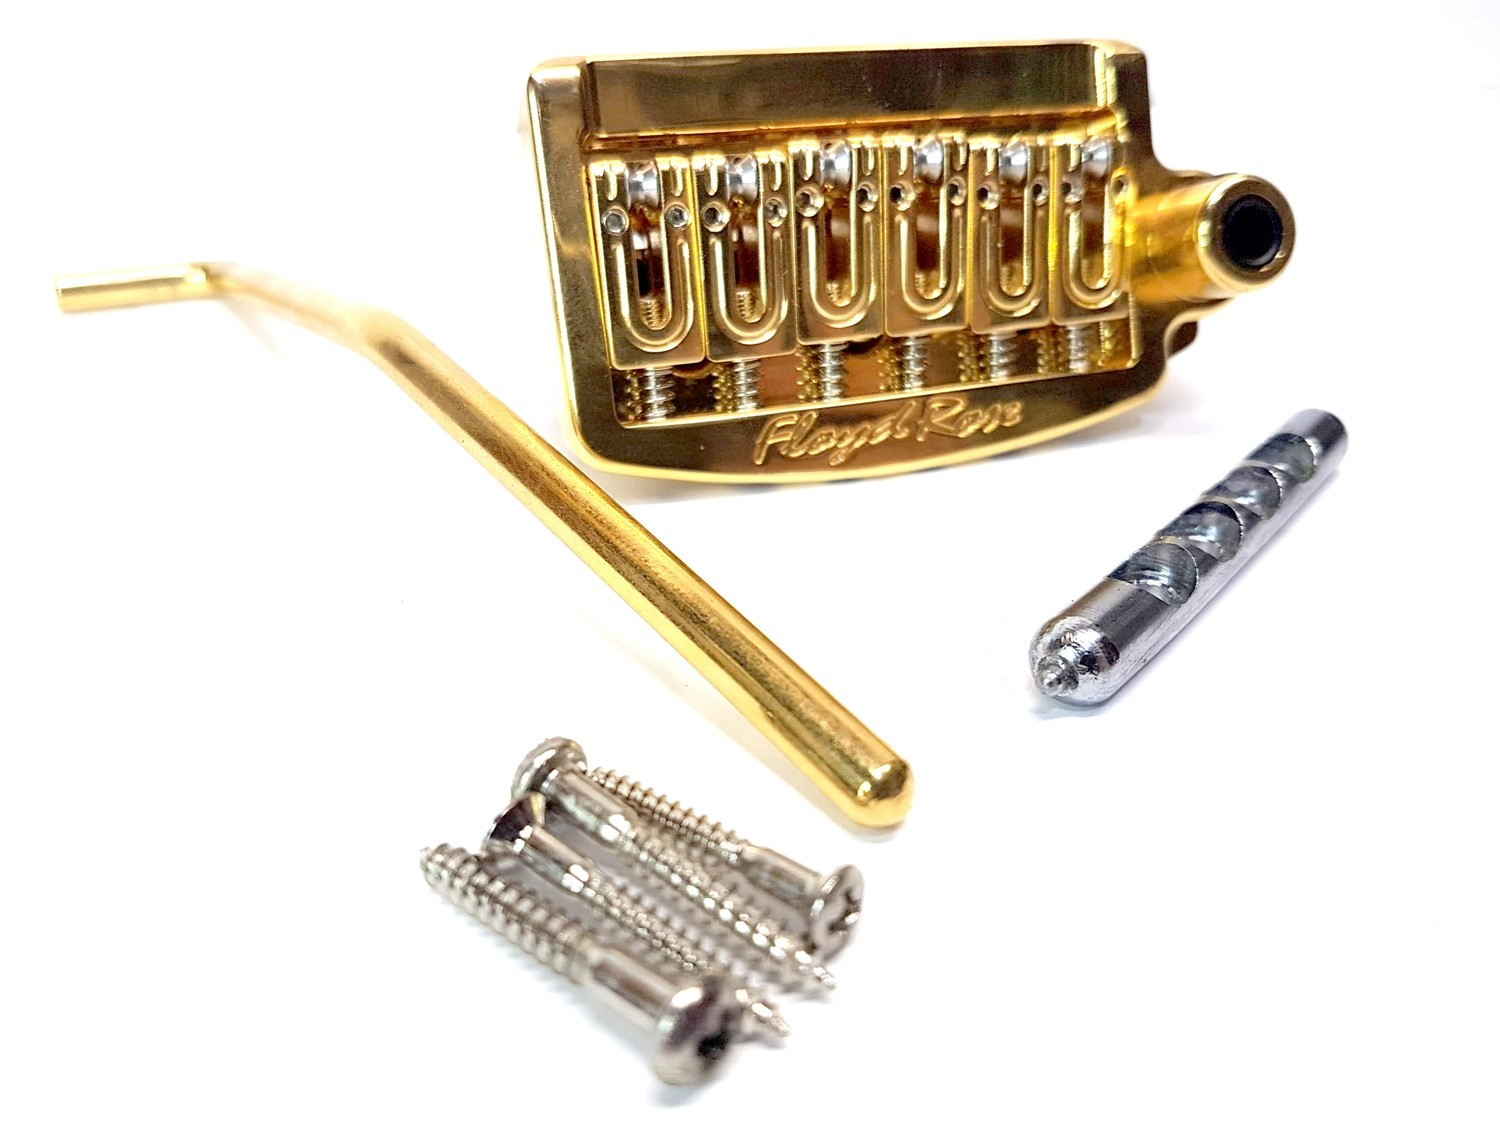 Floyd Rose RT300N Rail Tail Tremolo 4 Fender Stratocaster Type Guitars Narrow String Spacing GOLD